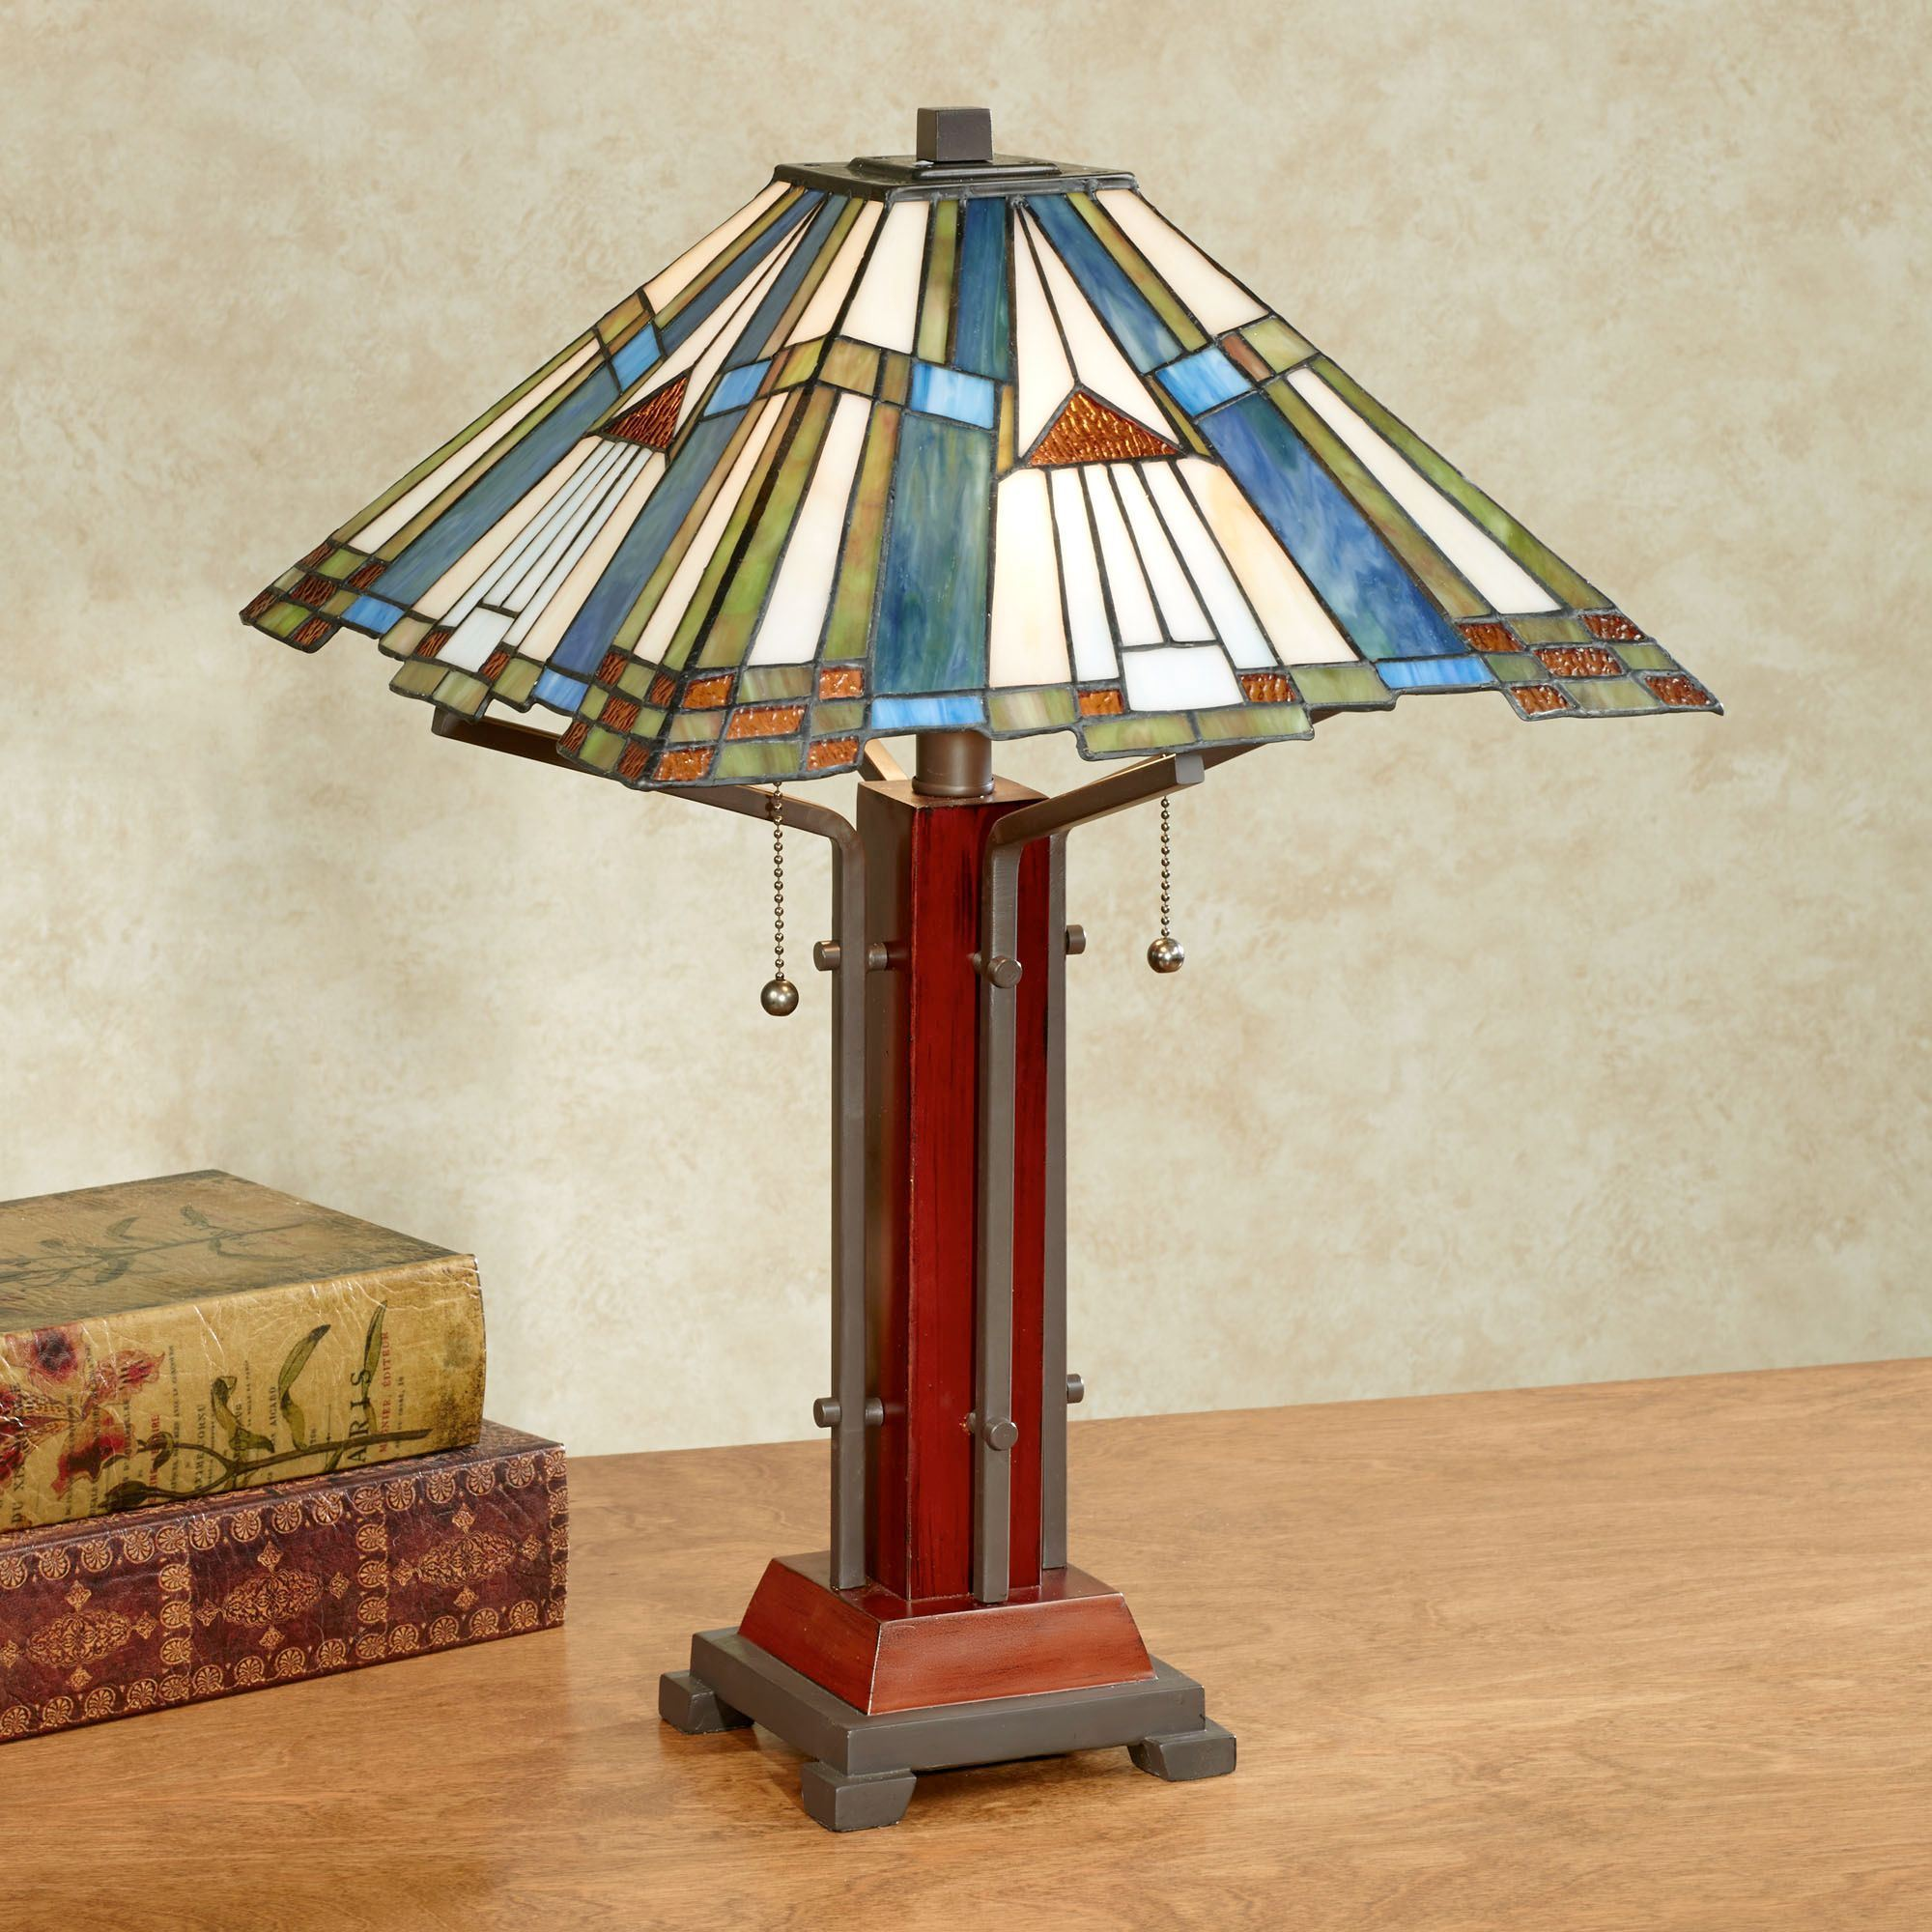 El camino southwest stained glass table lamp click to expand mozeypictures Image collections